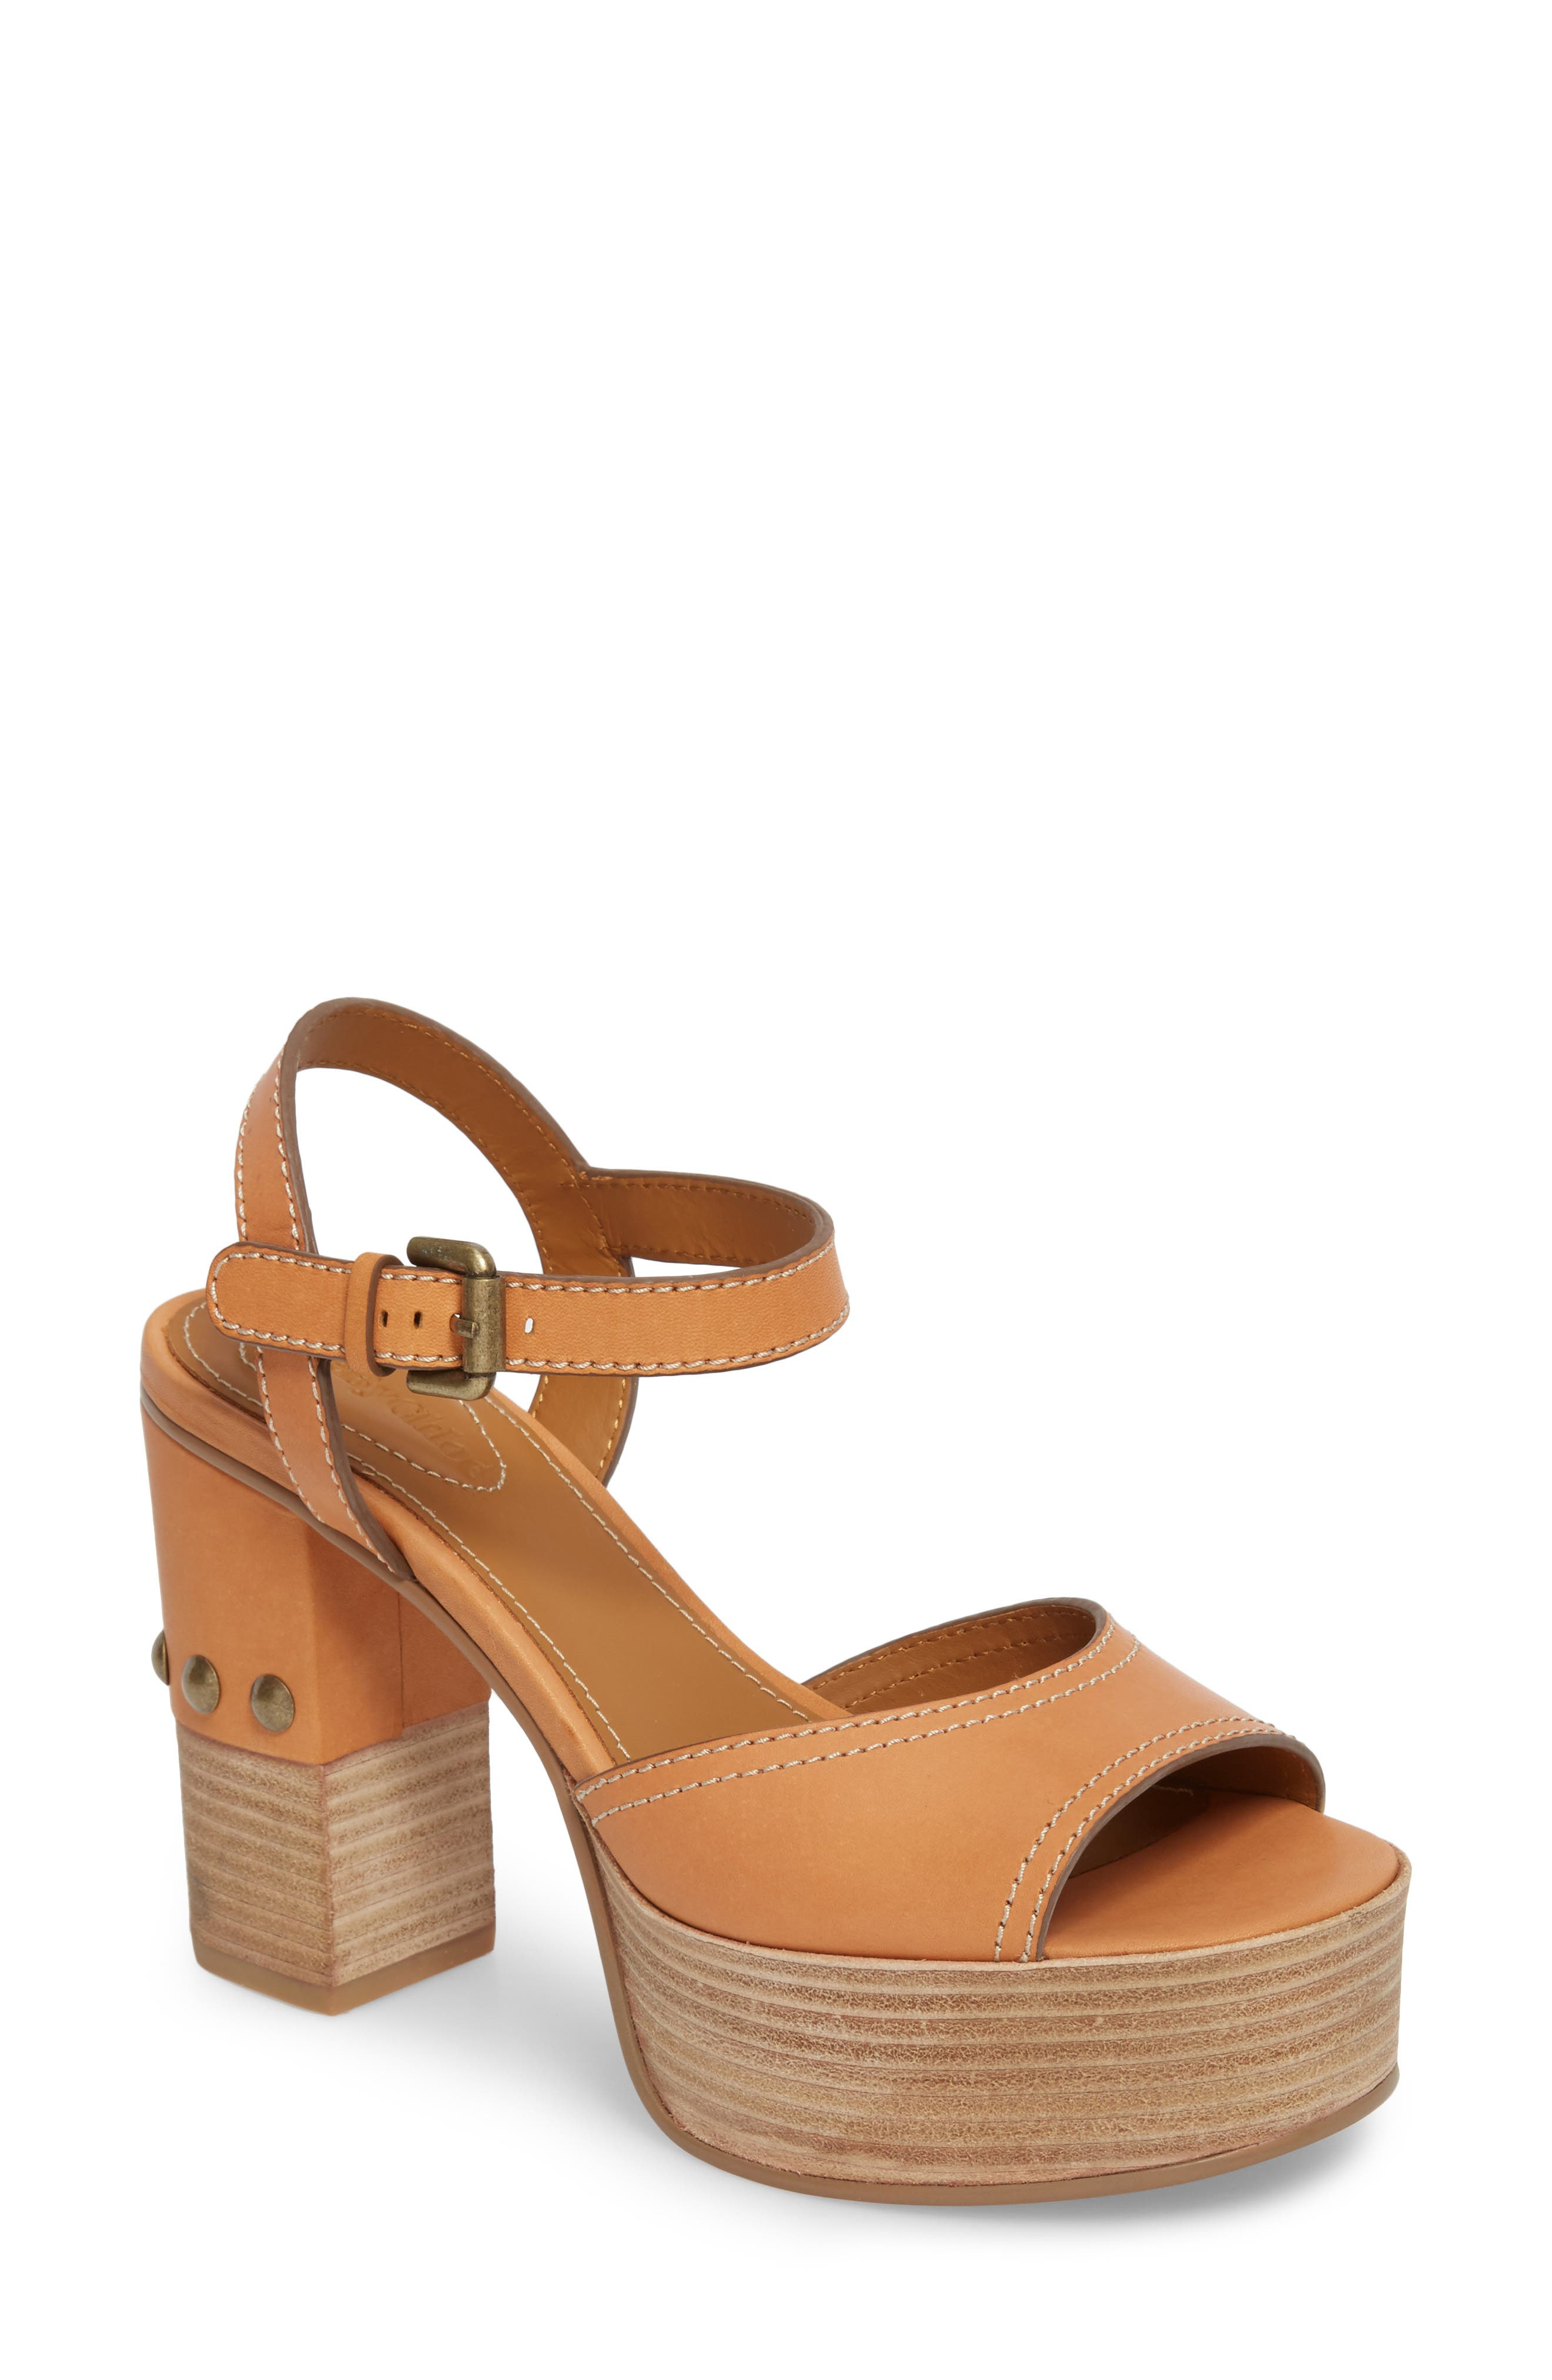 Alternate Image 1 Selected - See by Chloé Tina Block Heel Platform (Women)